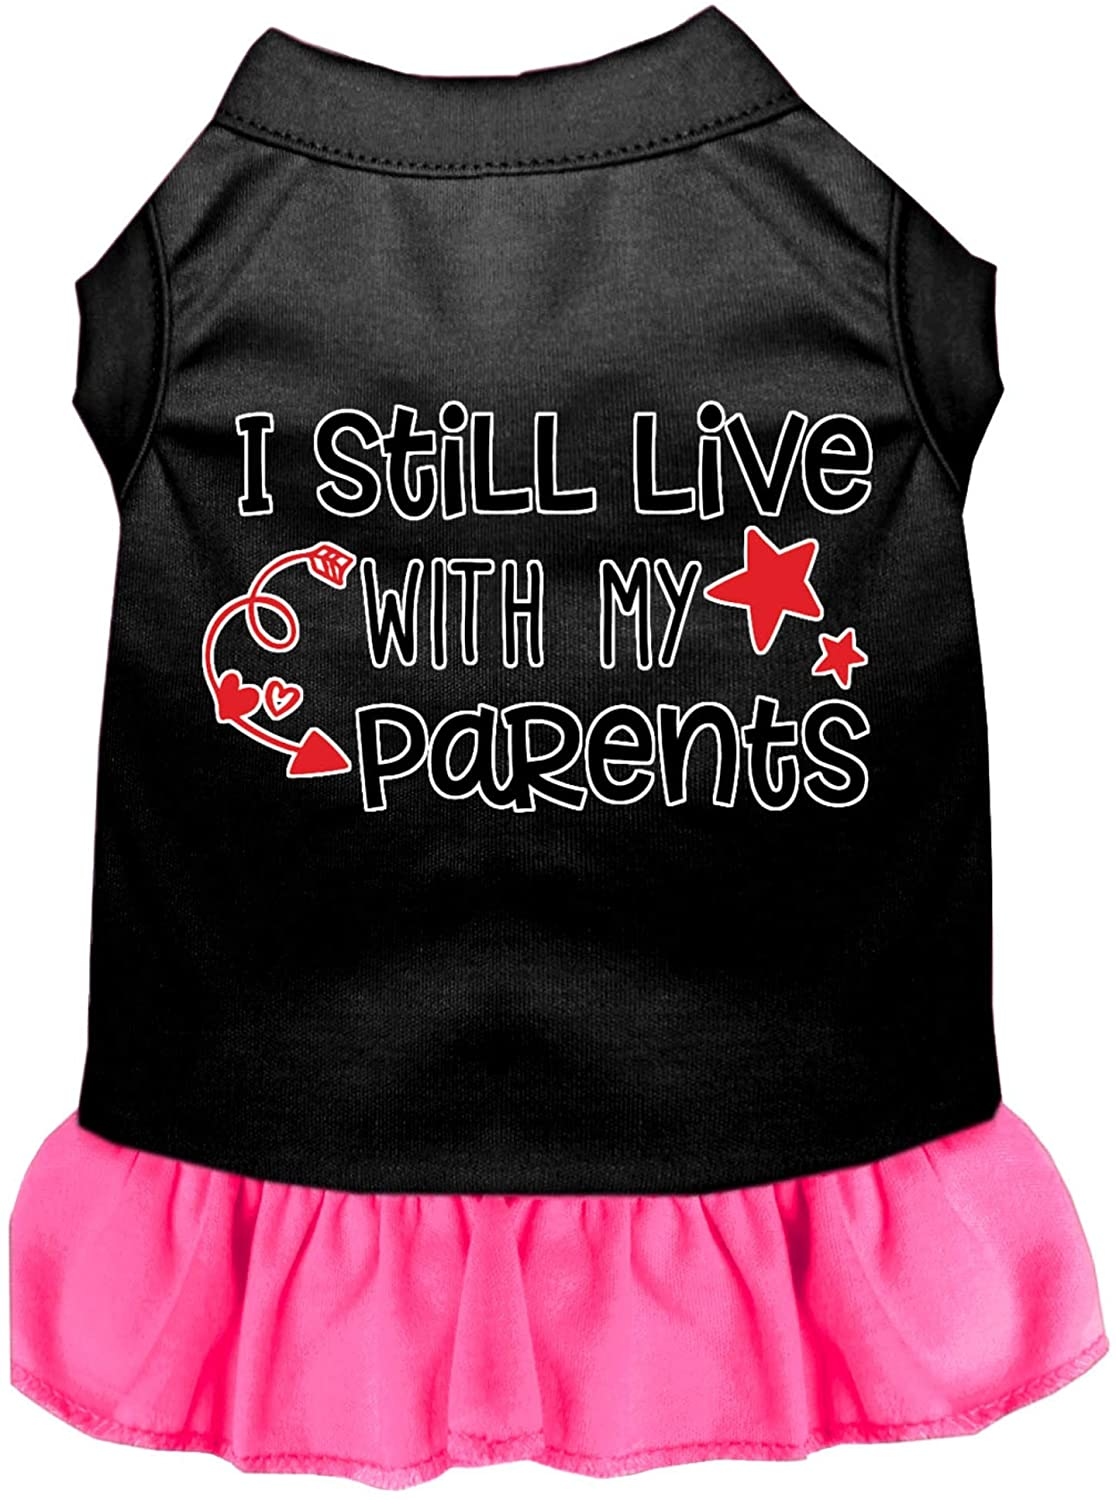 Mirage Pet Product Still Live with My Parents Screen Print Dog Dress Black with Bright Pink Lg (14)